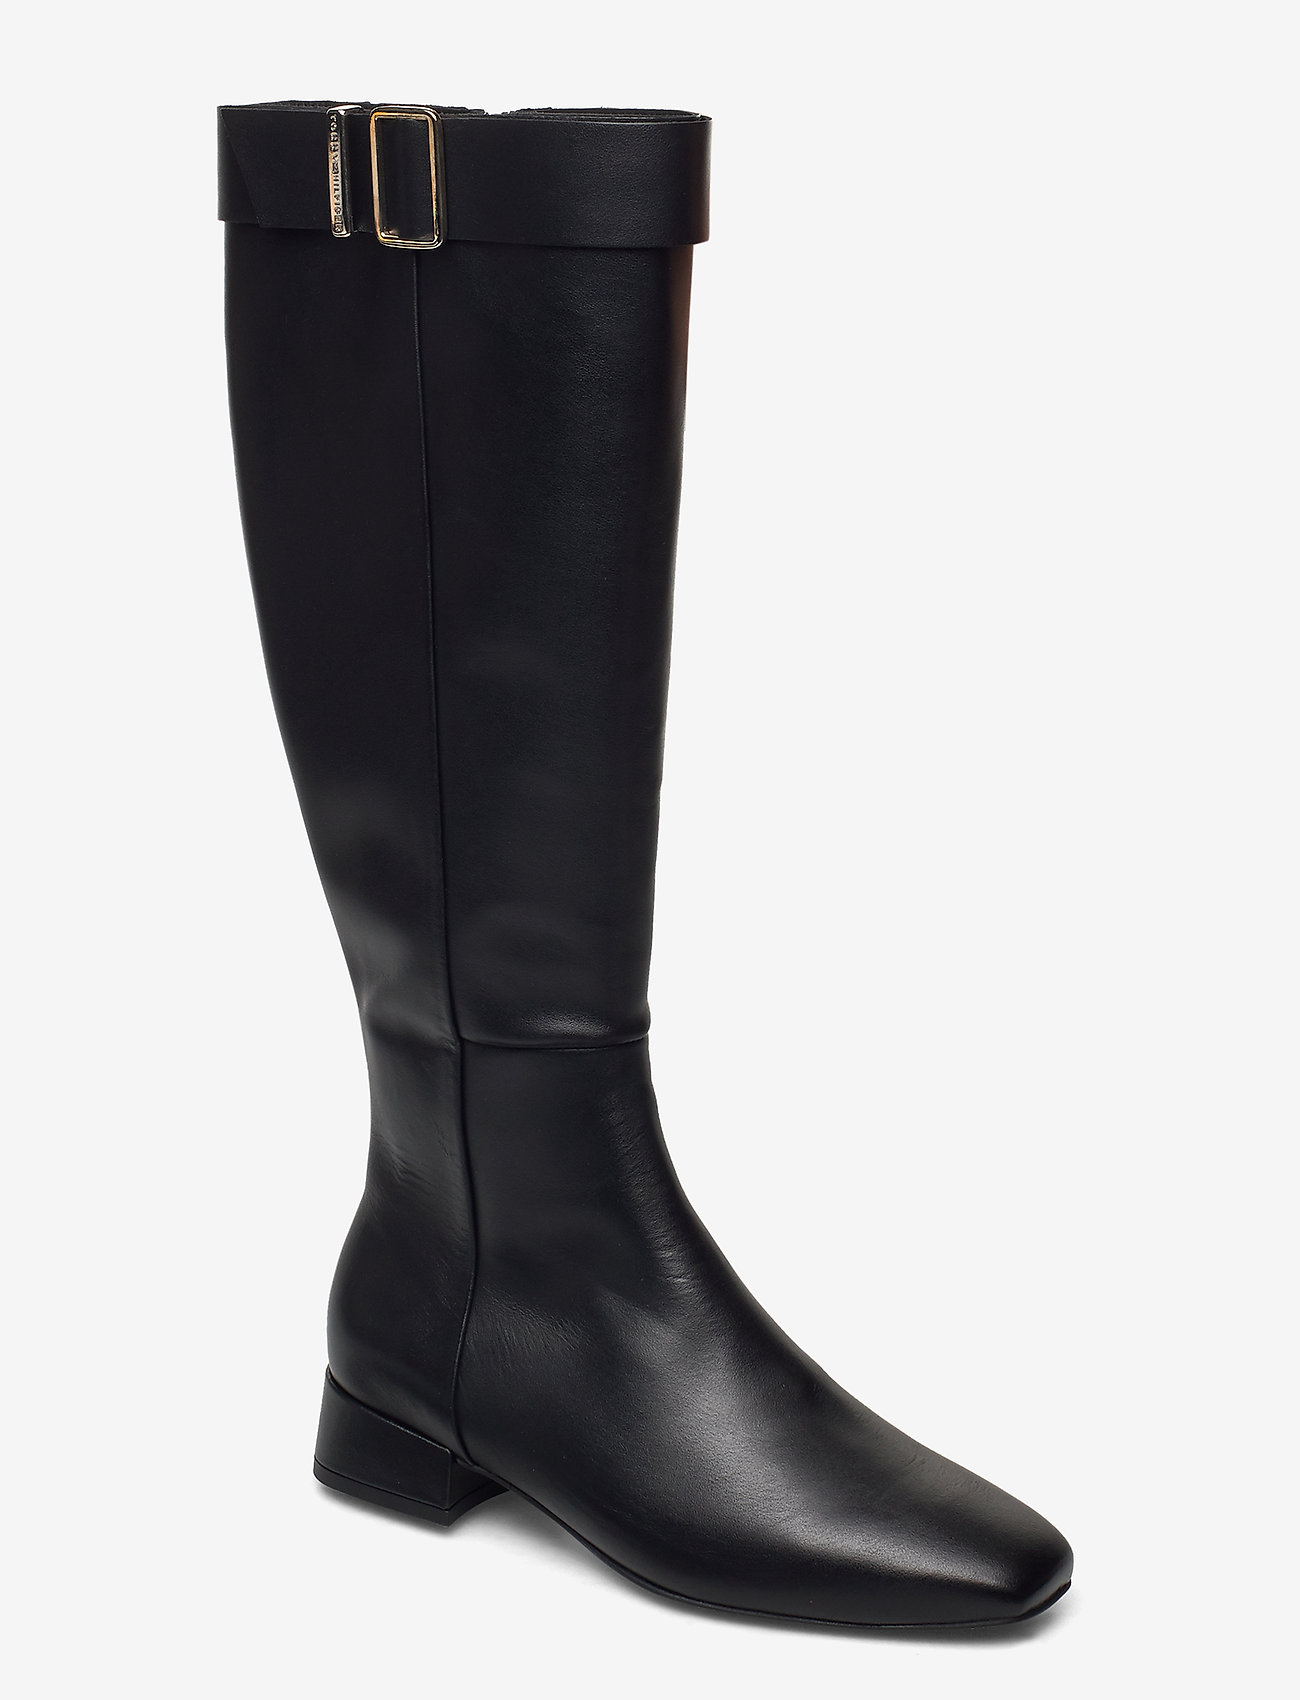 Tommy Hilfiger - LEATHER SQUARE TOE LONG BOOT - long boots - black - 0